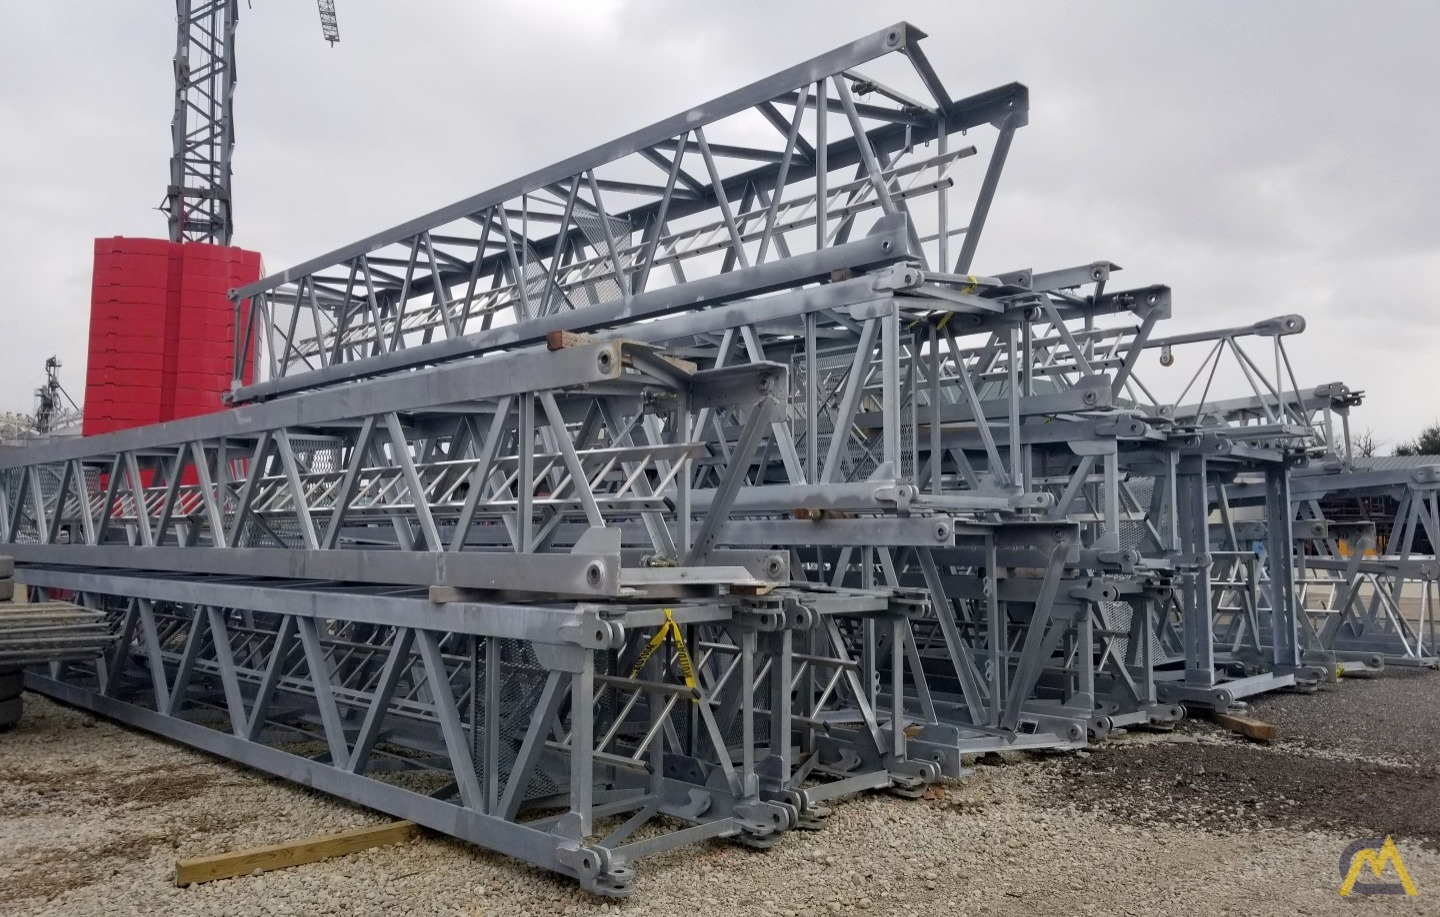 (2) San Marco SMT 520 Flat Top Tower cranes starting at $200,000 USD 5